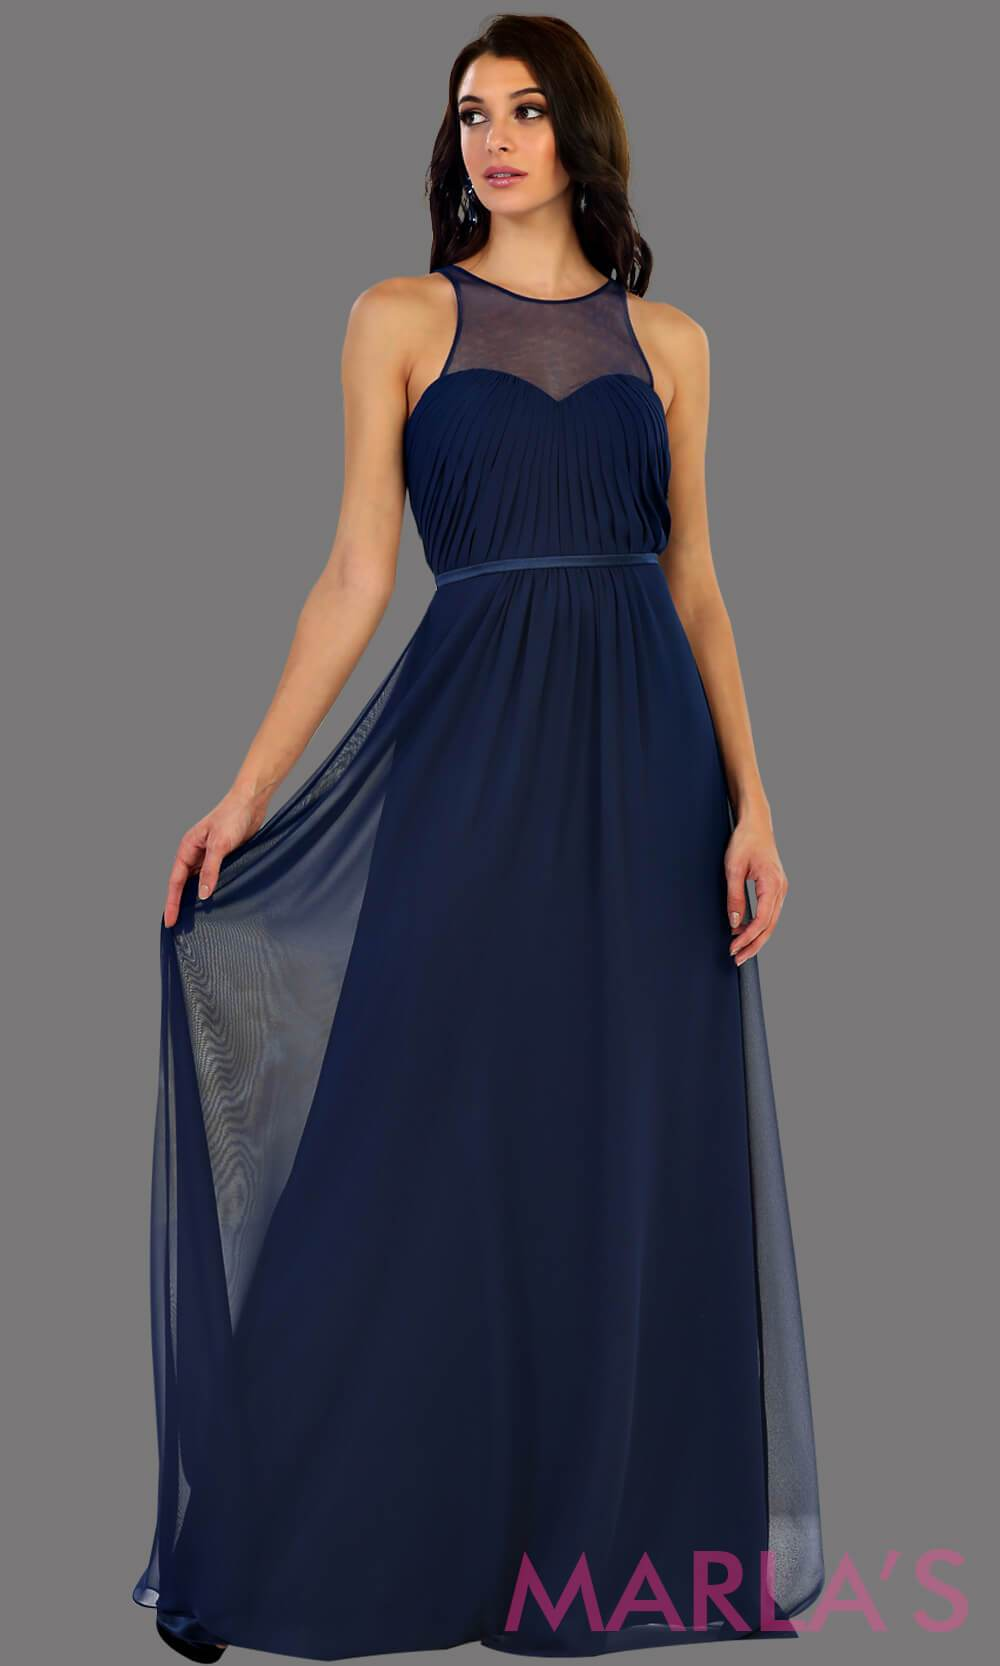 Long navy flowy dress with high neck mesh neckline. This is perfect for your next party, or wedding guest dress, as a prom dress. This dress is also available in plus size